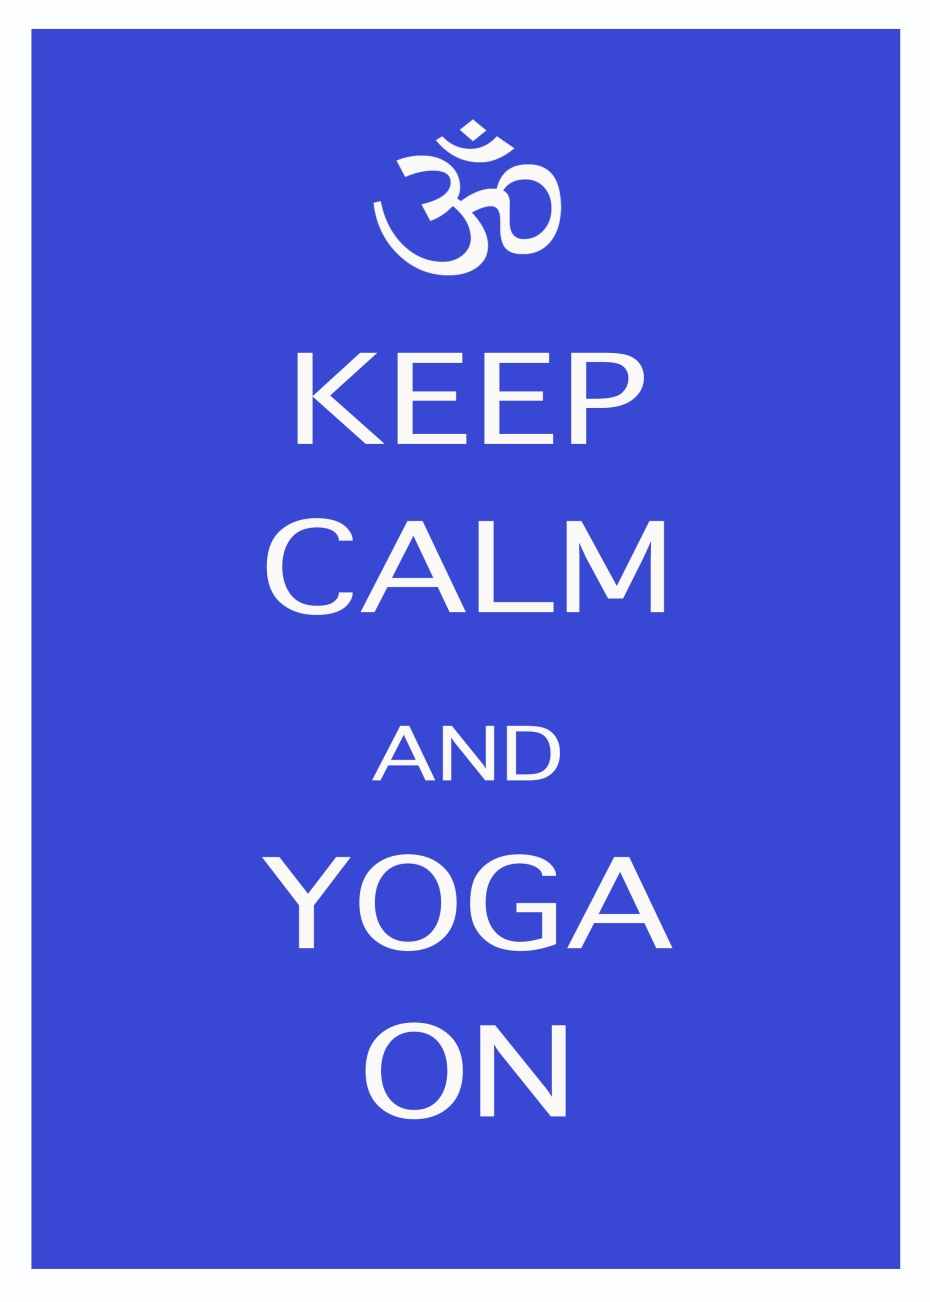 keepcalm and yoga on